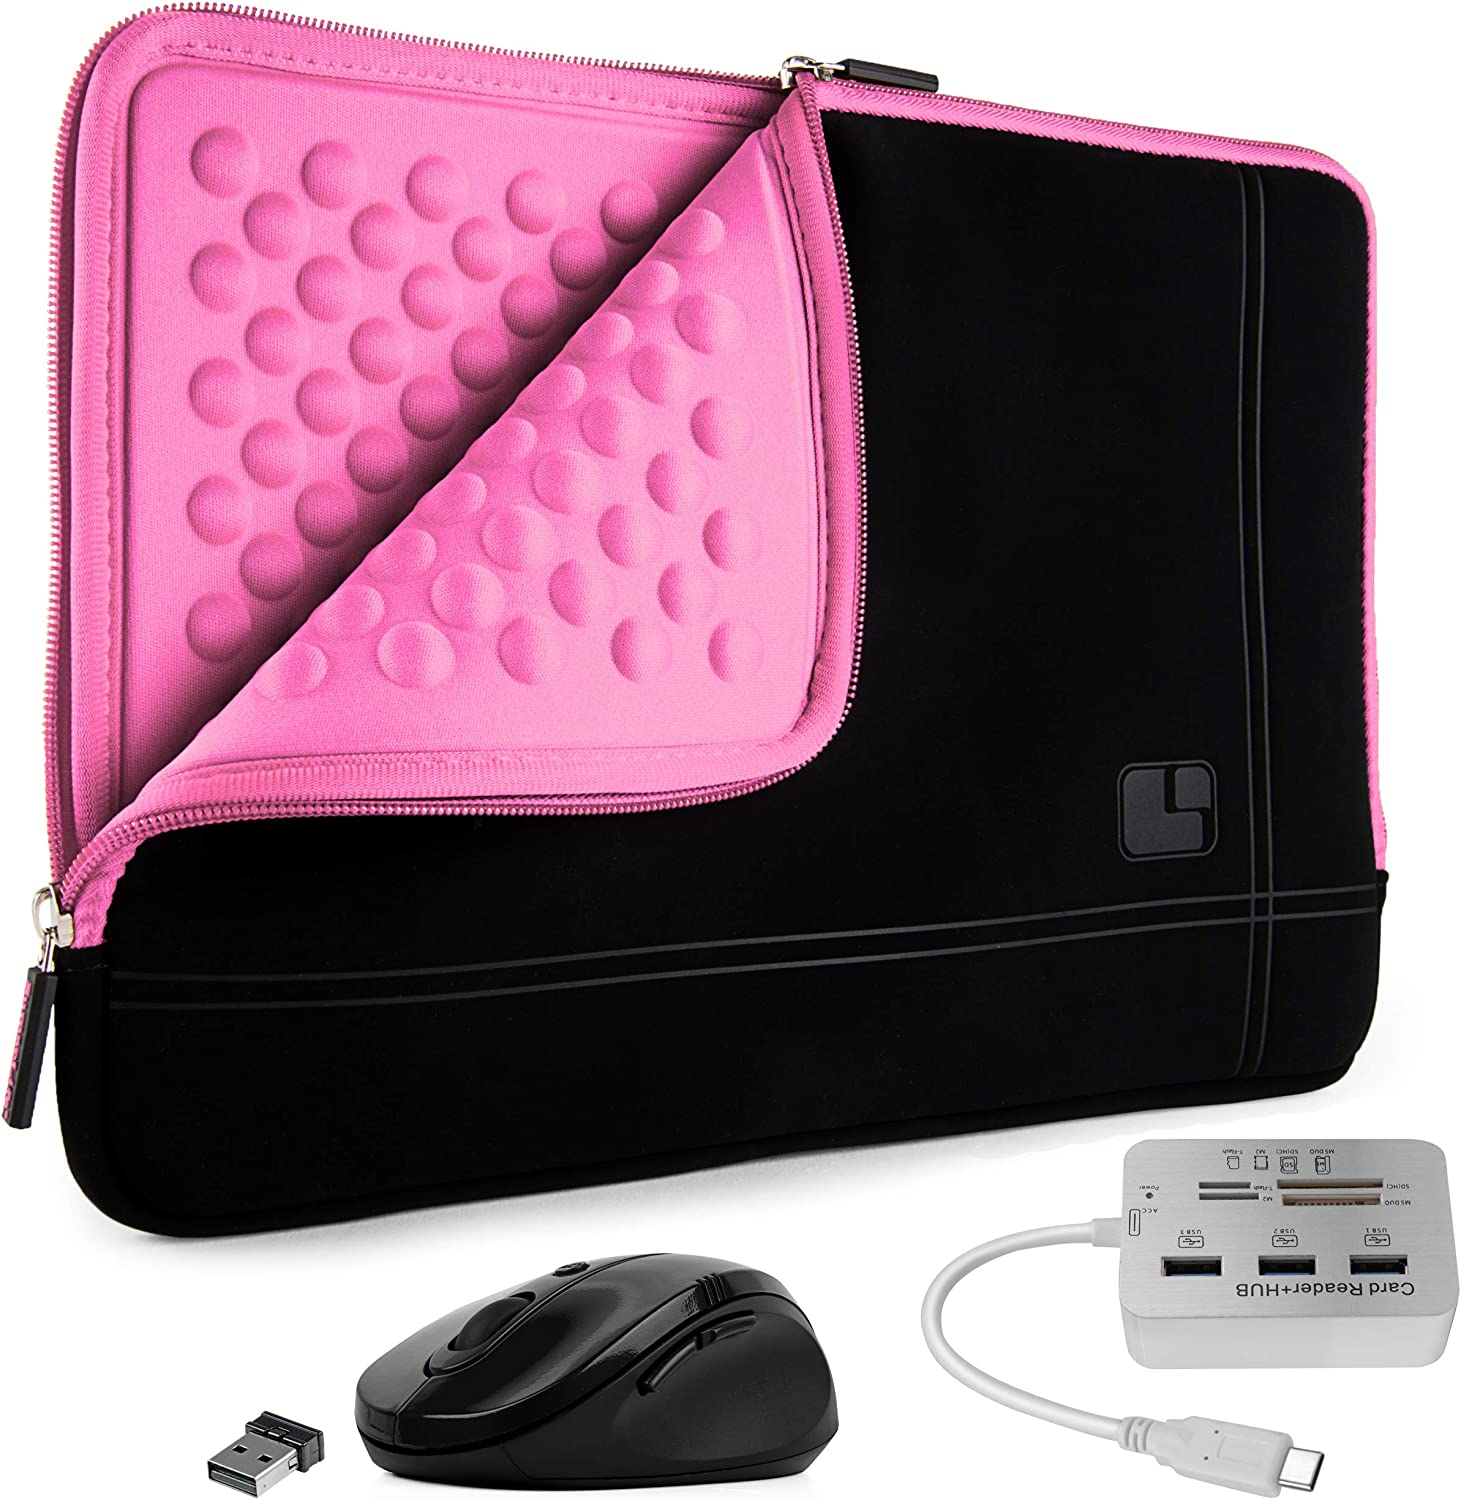 Shock Absorbing Padded Laptop Sleeve, USB Hub, Mouse for Dell Inspiron 14 5400 5406 4790 7405, Latitude 14 3410 5490 14-inch (Pink)